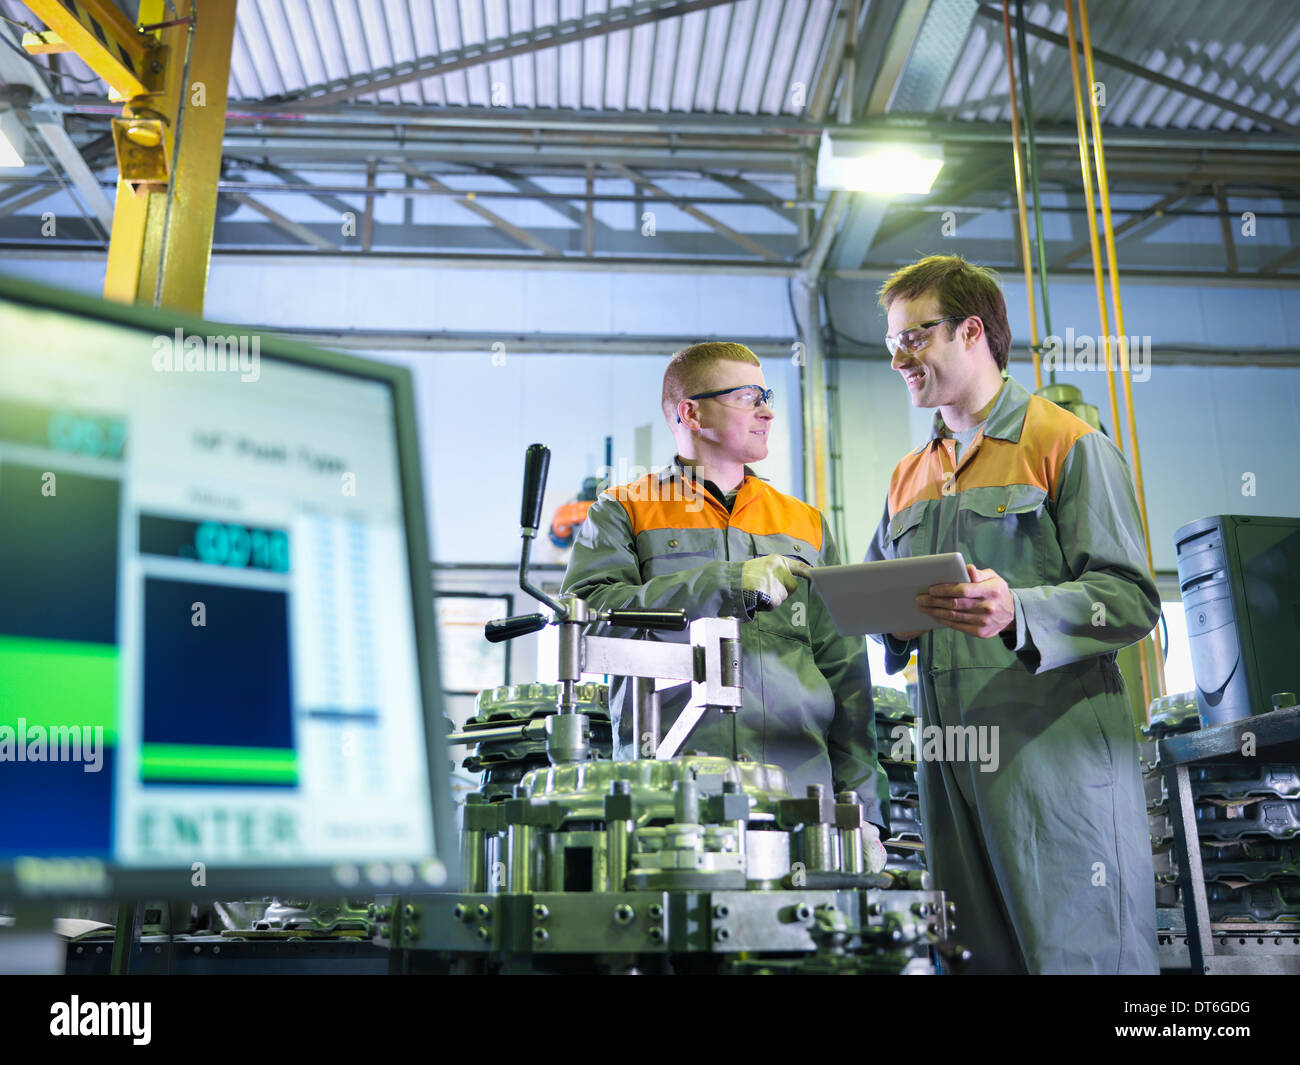 Engineer and apprentice using digital tablet at work station in factory - Stock Image